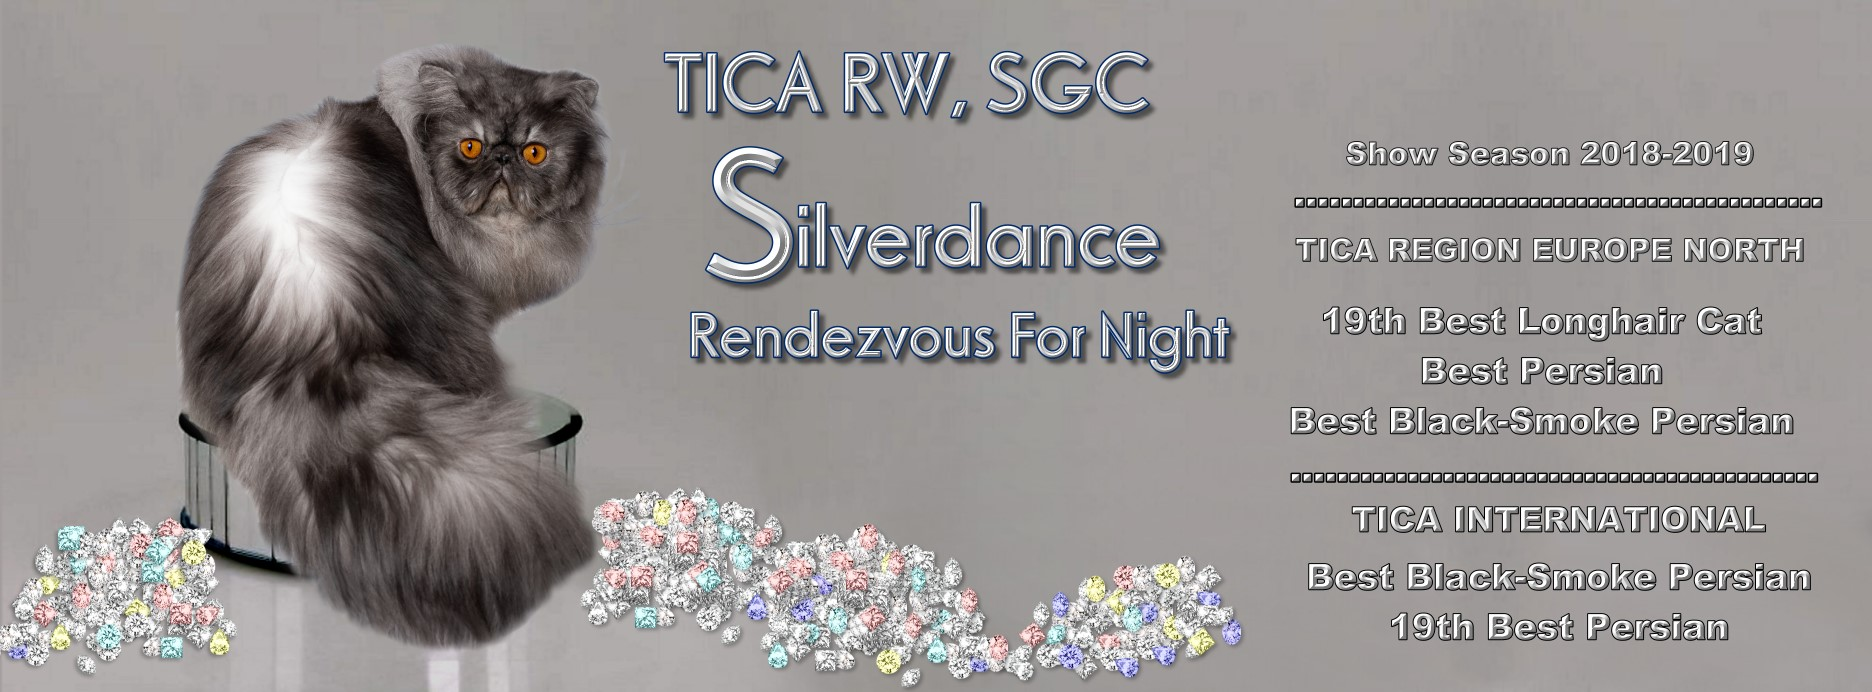 TICA RW, SGC/IC Silverdance Rendezvous For Night